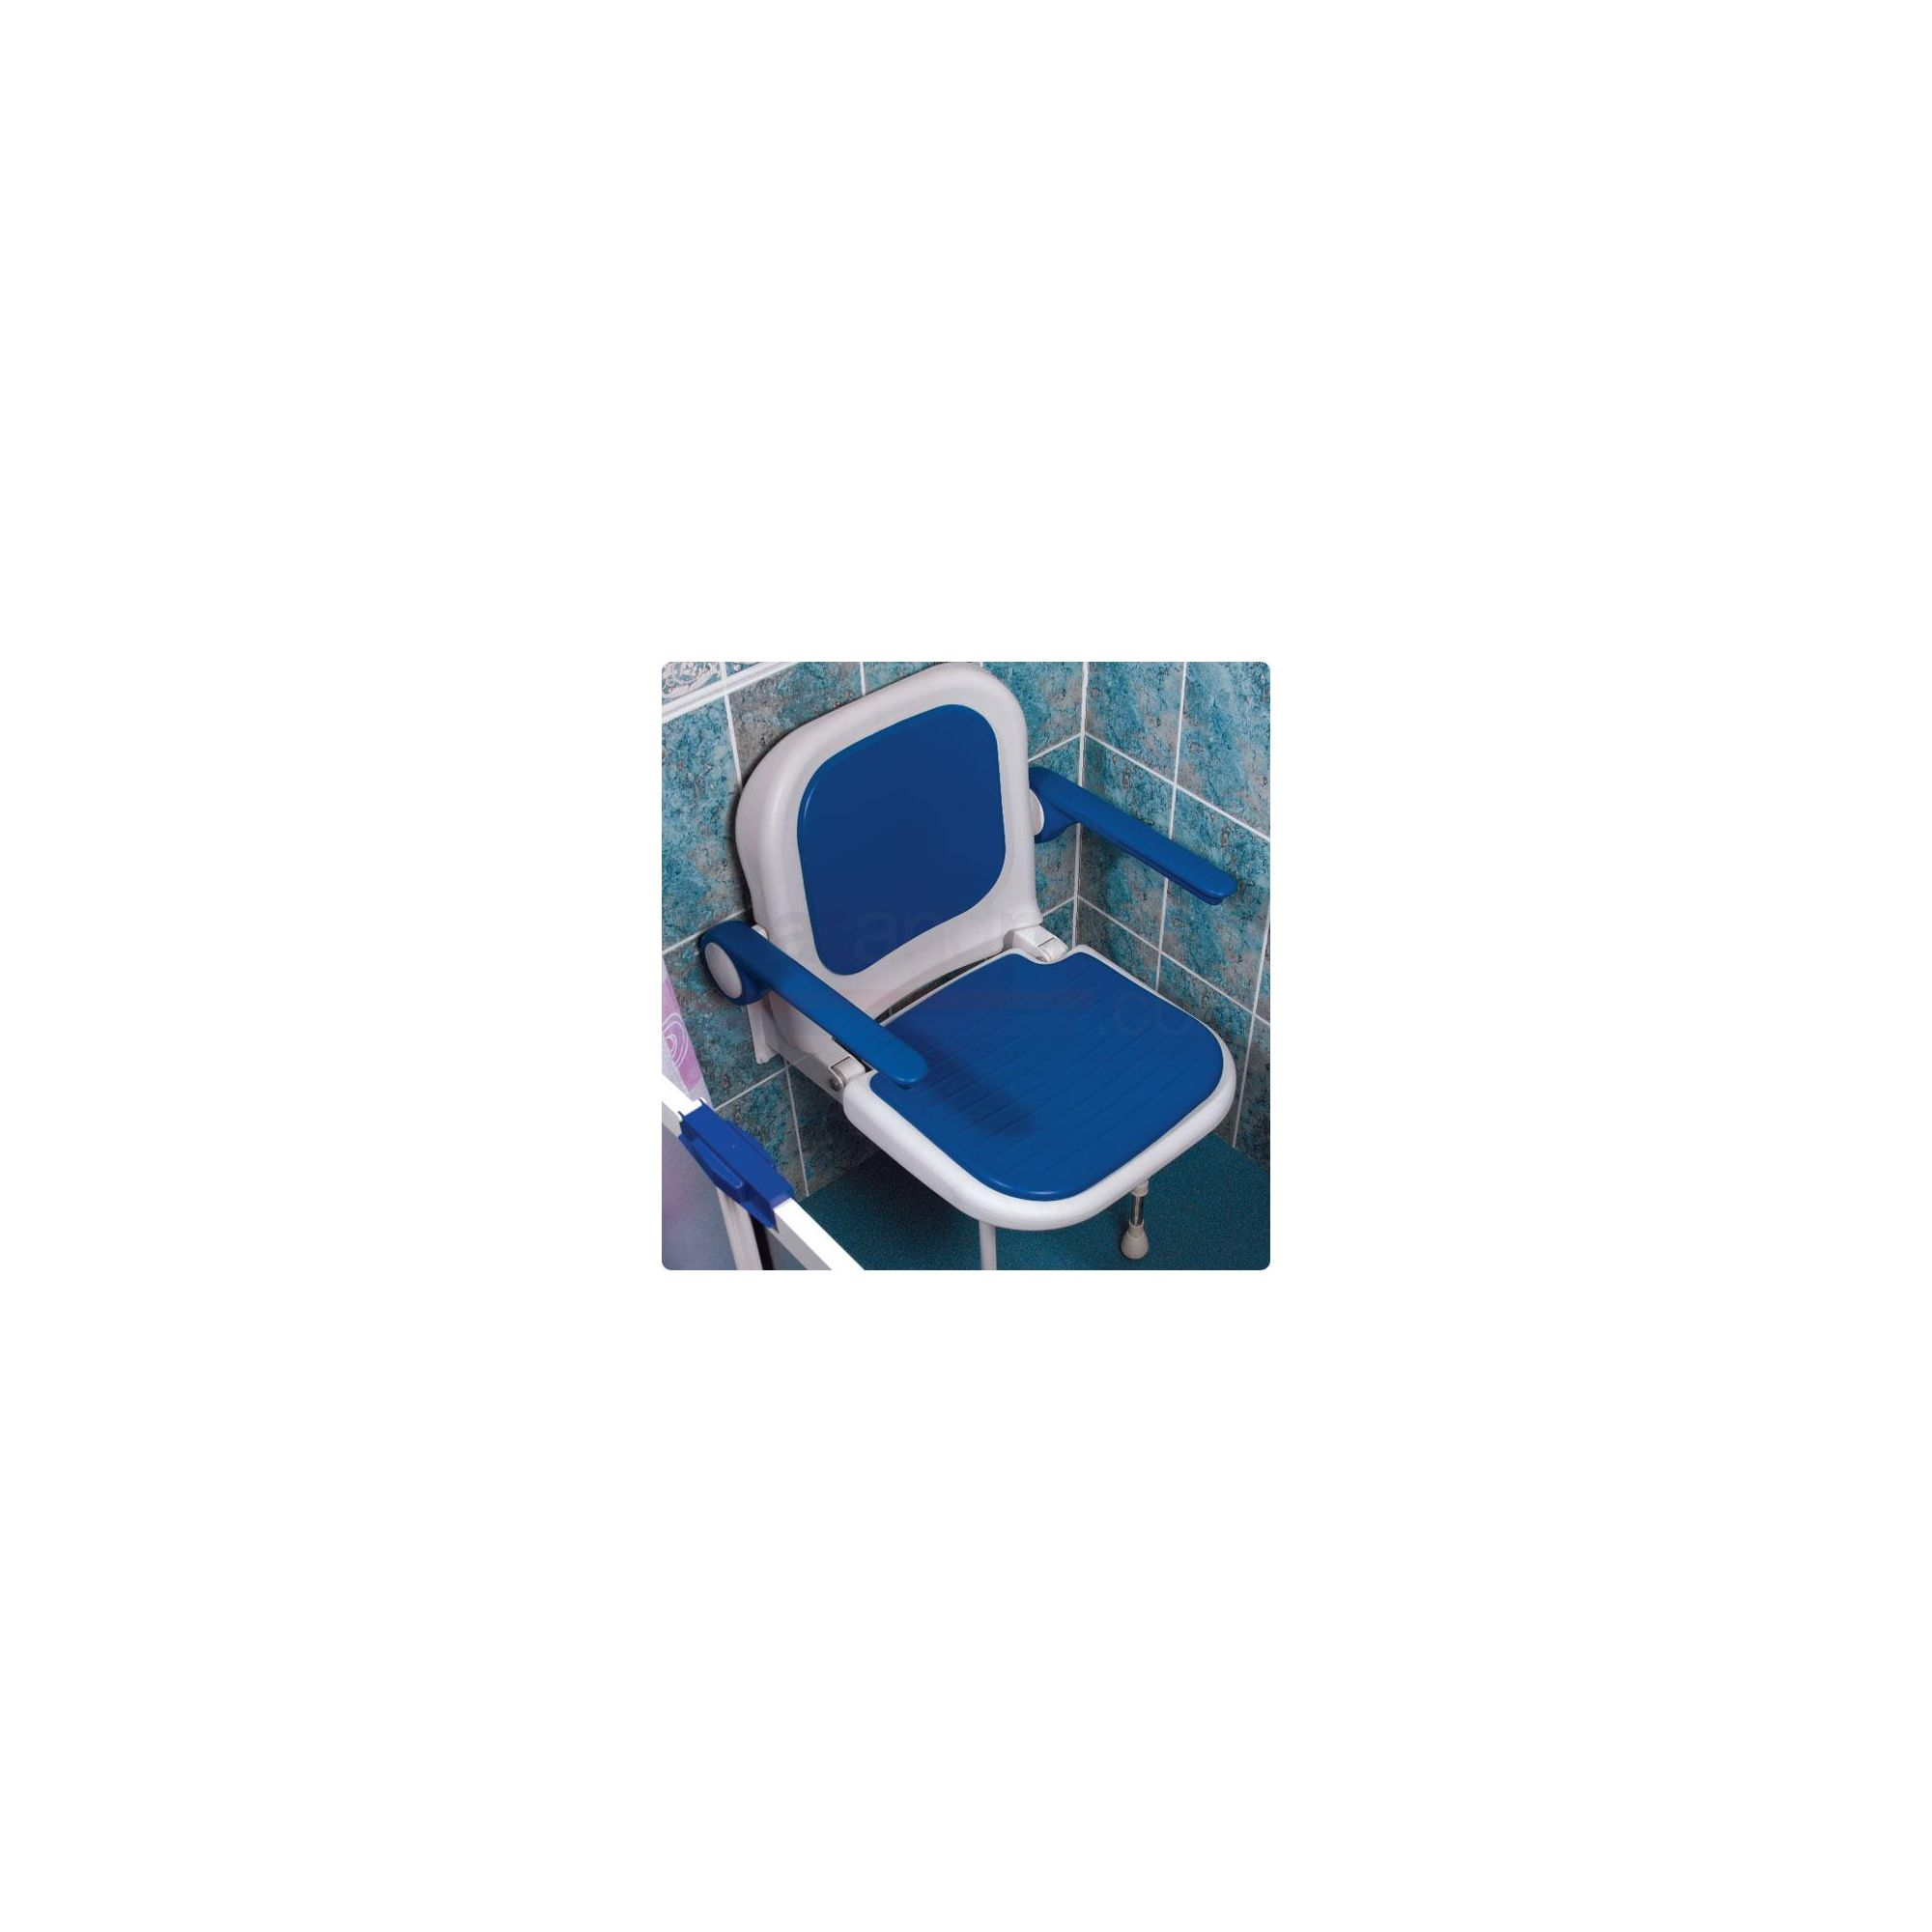 AKW 4000 Series Standard Fold Up Shower Seat Blue with Back and Arms Blue at Tesco Direct